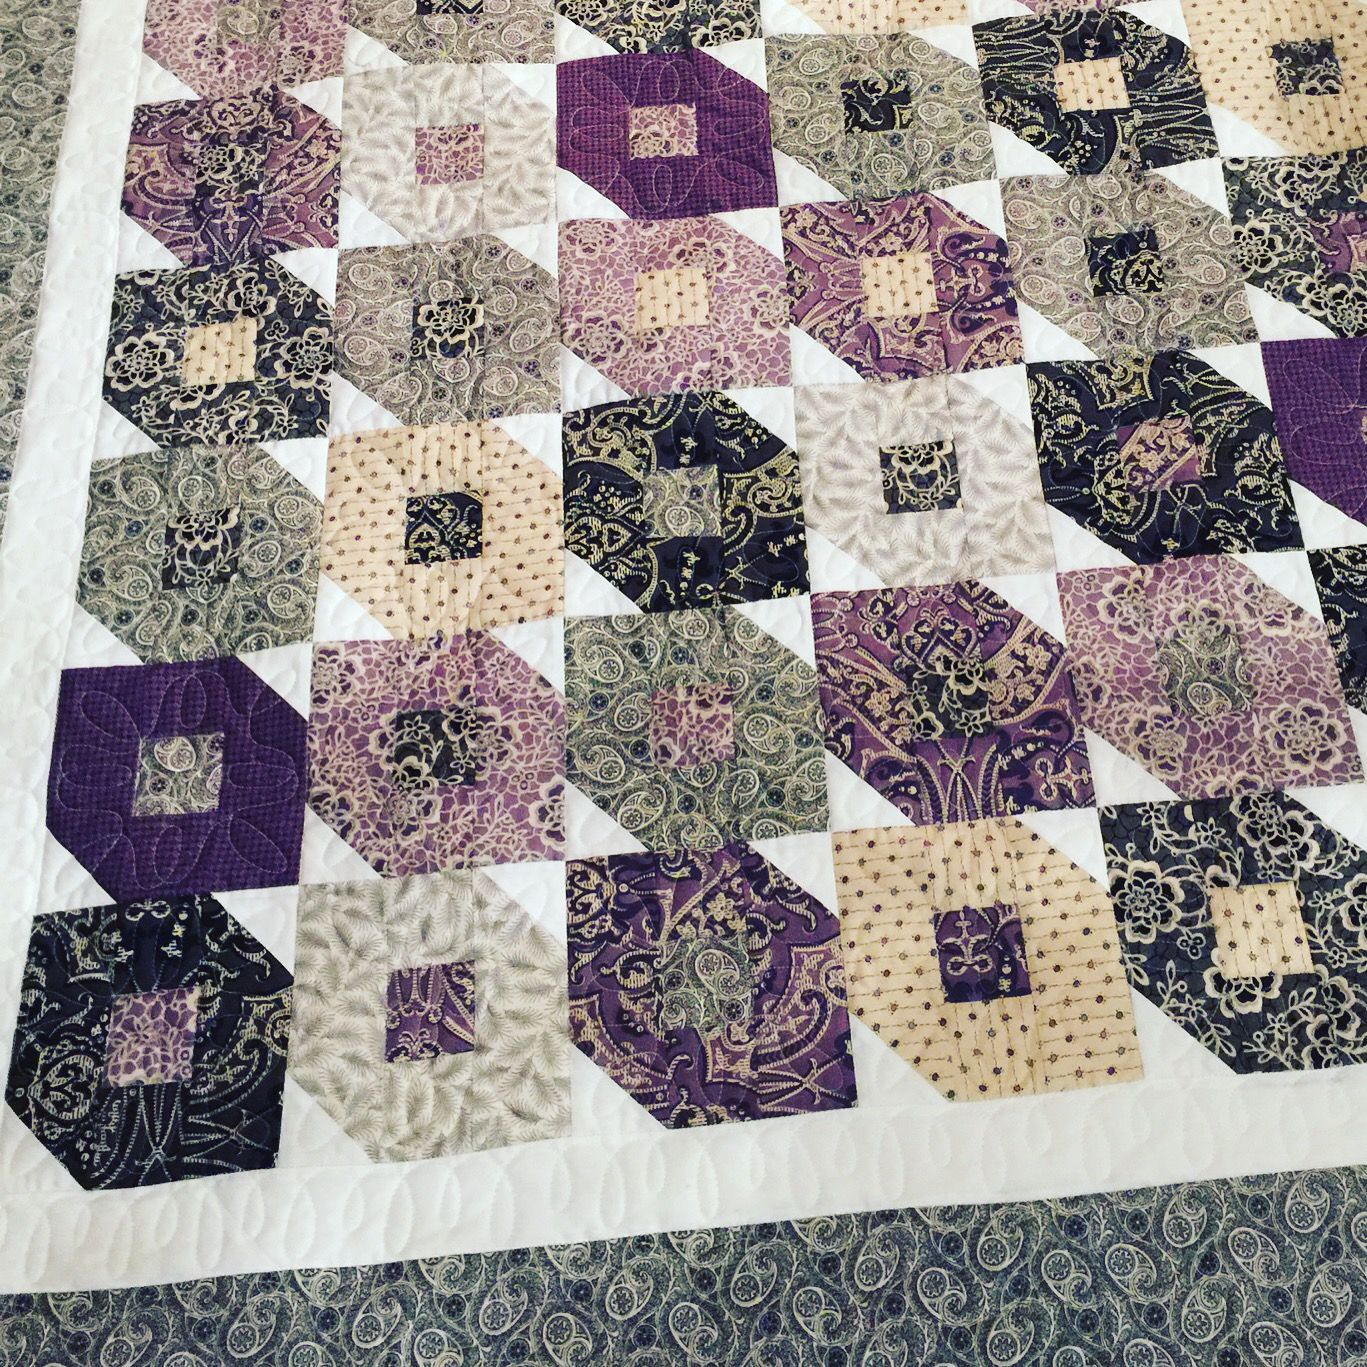 Flutterby quilt pattern using Downton Abbey fabrics by Andover ... : downton abbey quilt pattern - Adamdwight.com